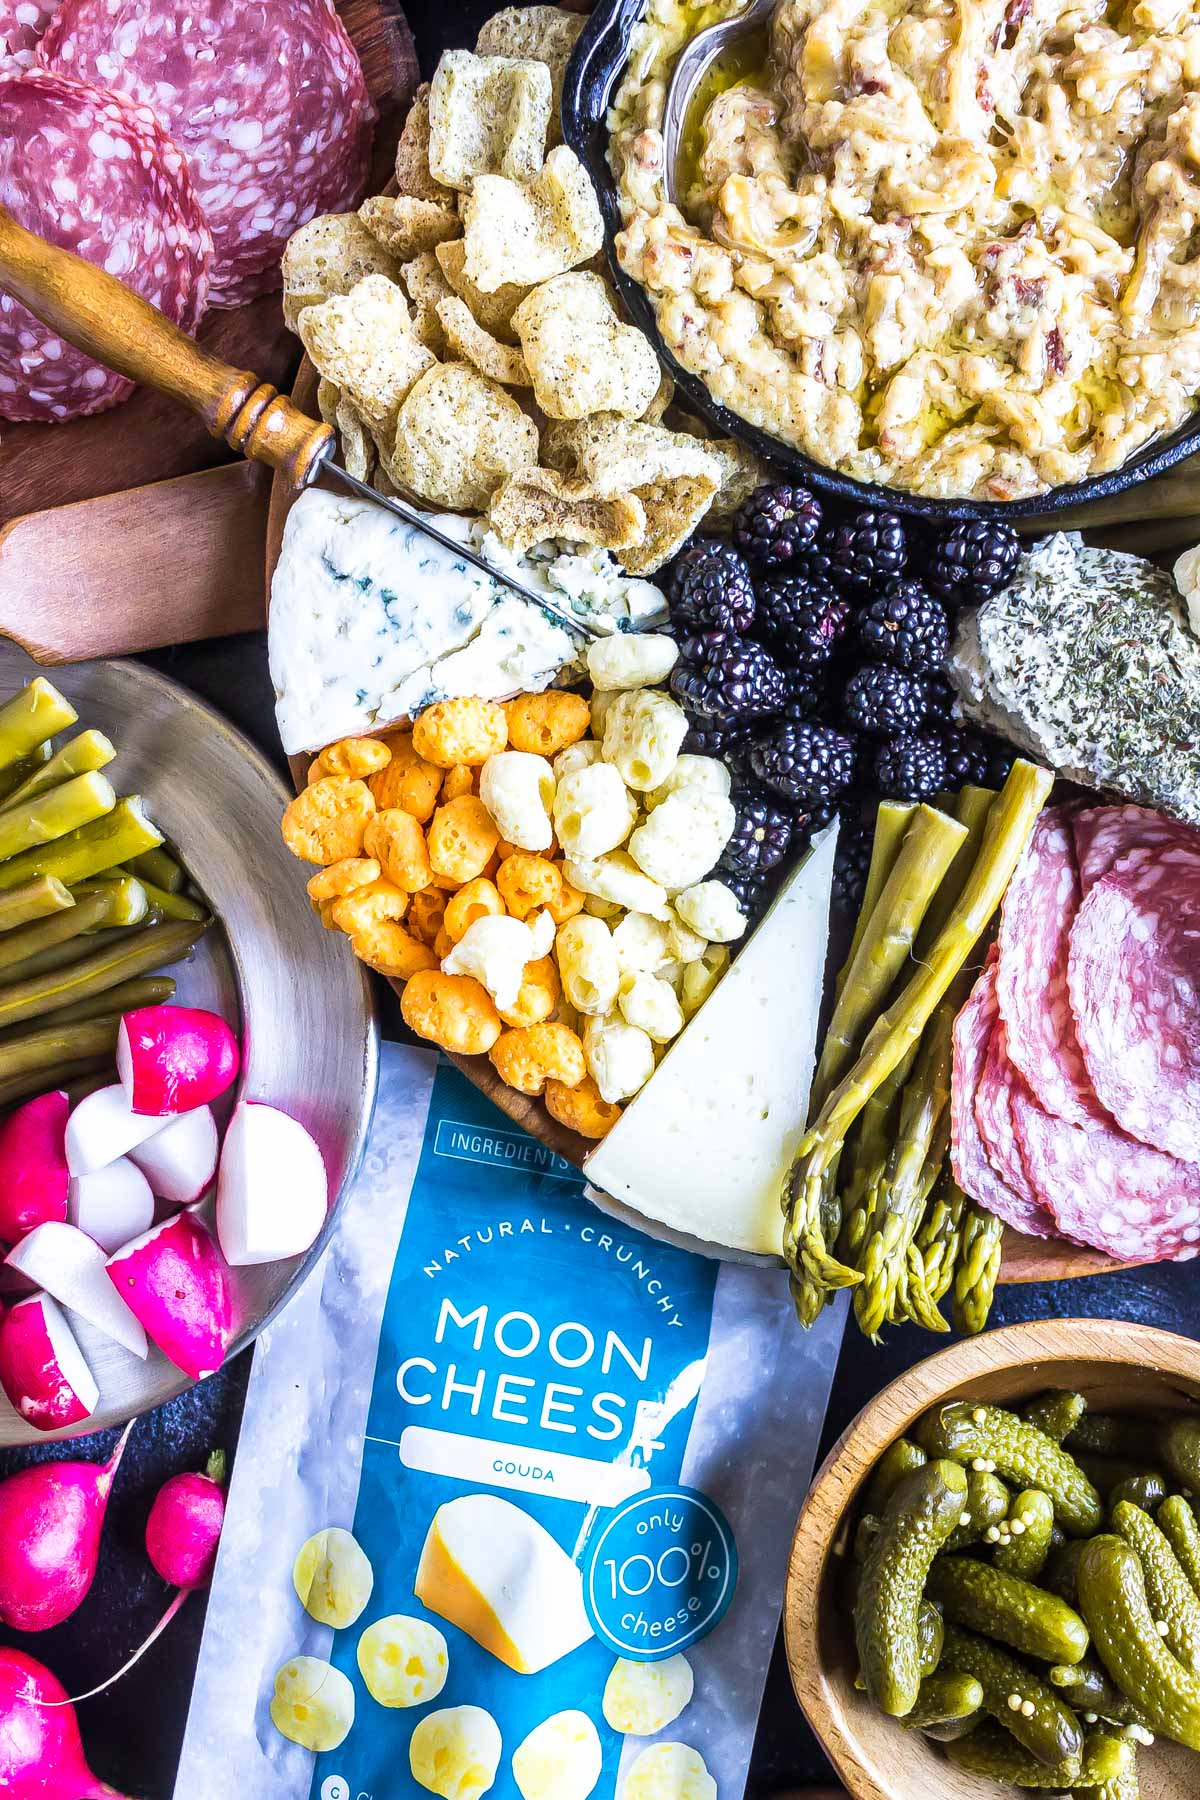 close up image of How To Build a Keto Cheese Board with moon cheese packaging prominently featured